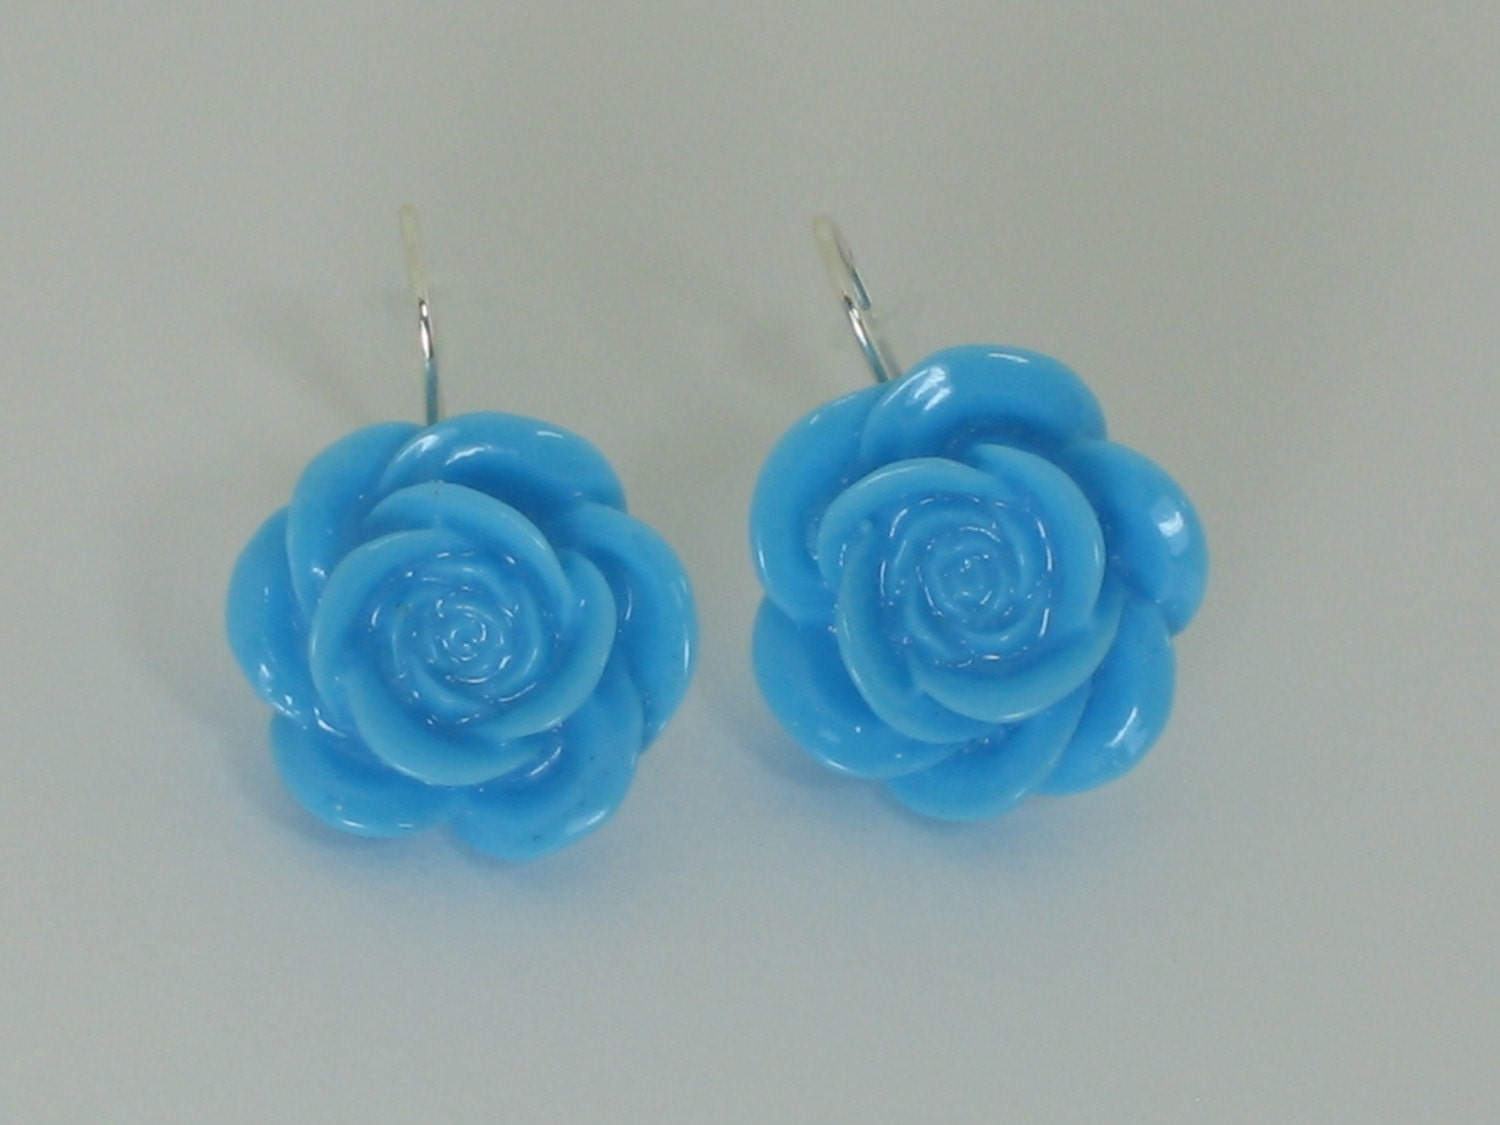 Vintage Inspired Lucite Roses on Fishhook Earrings